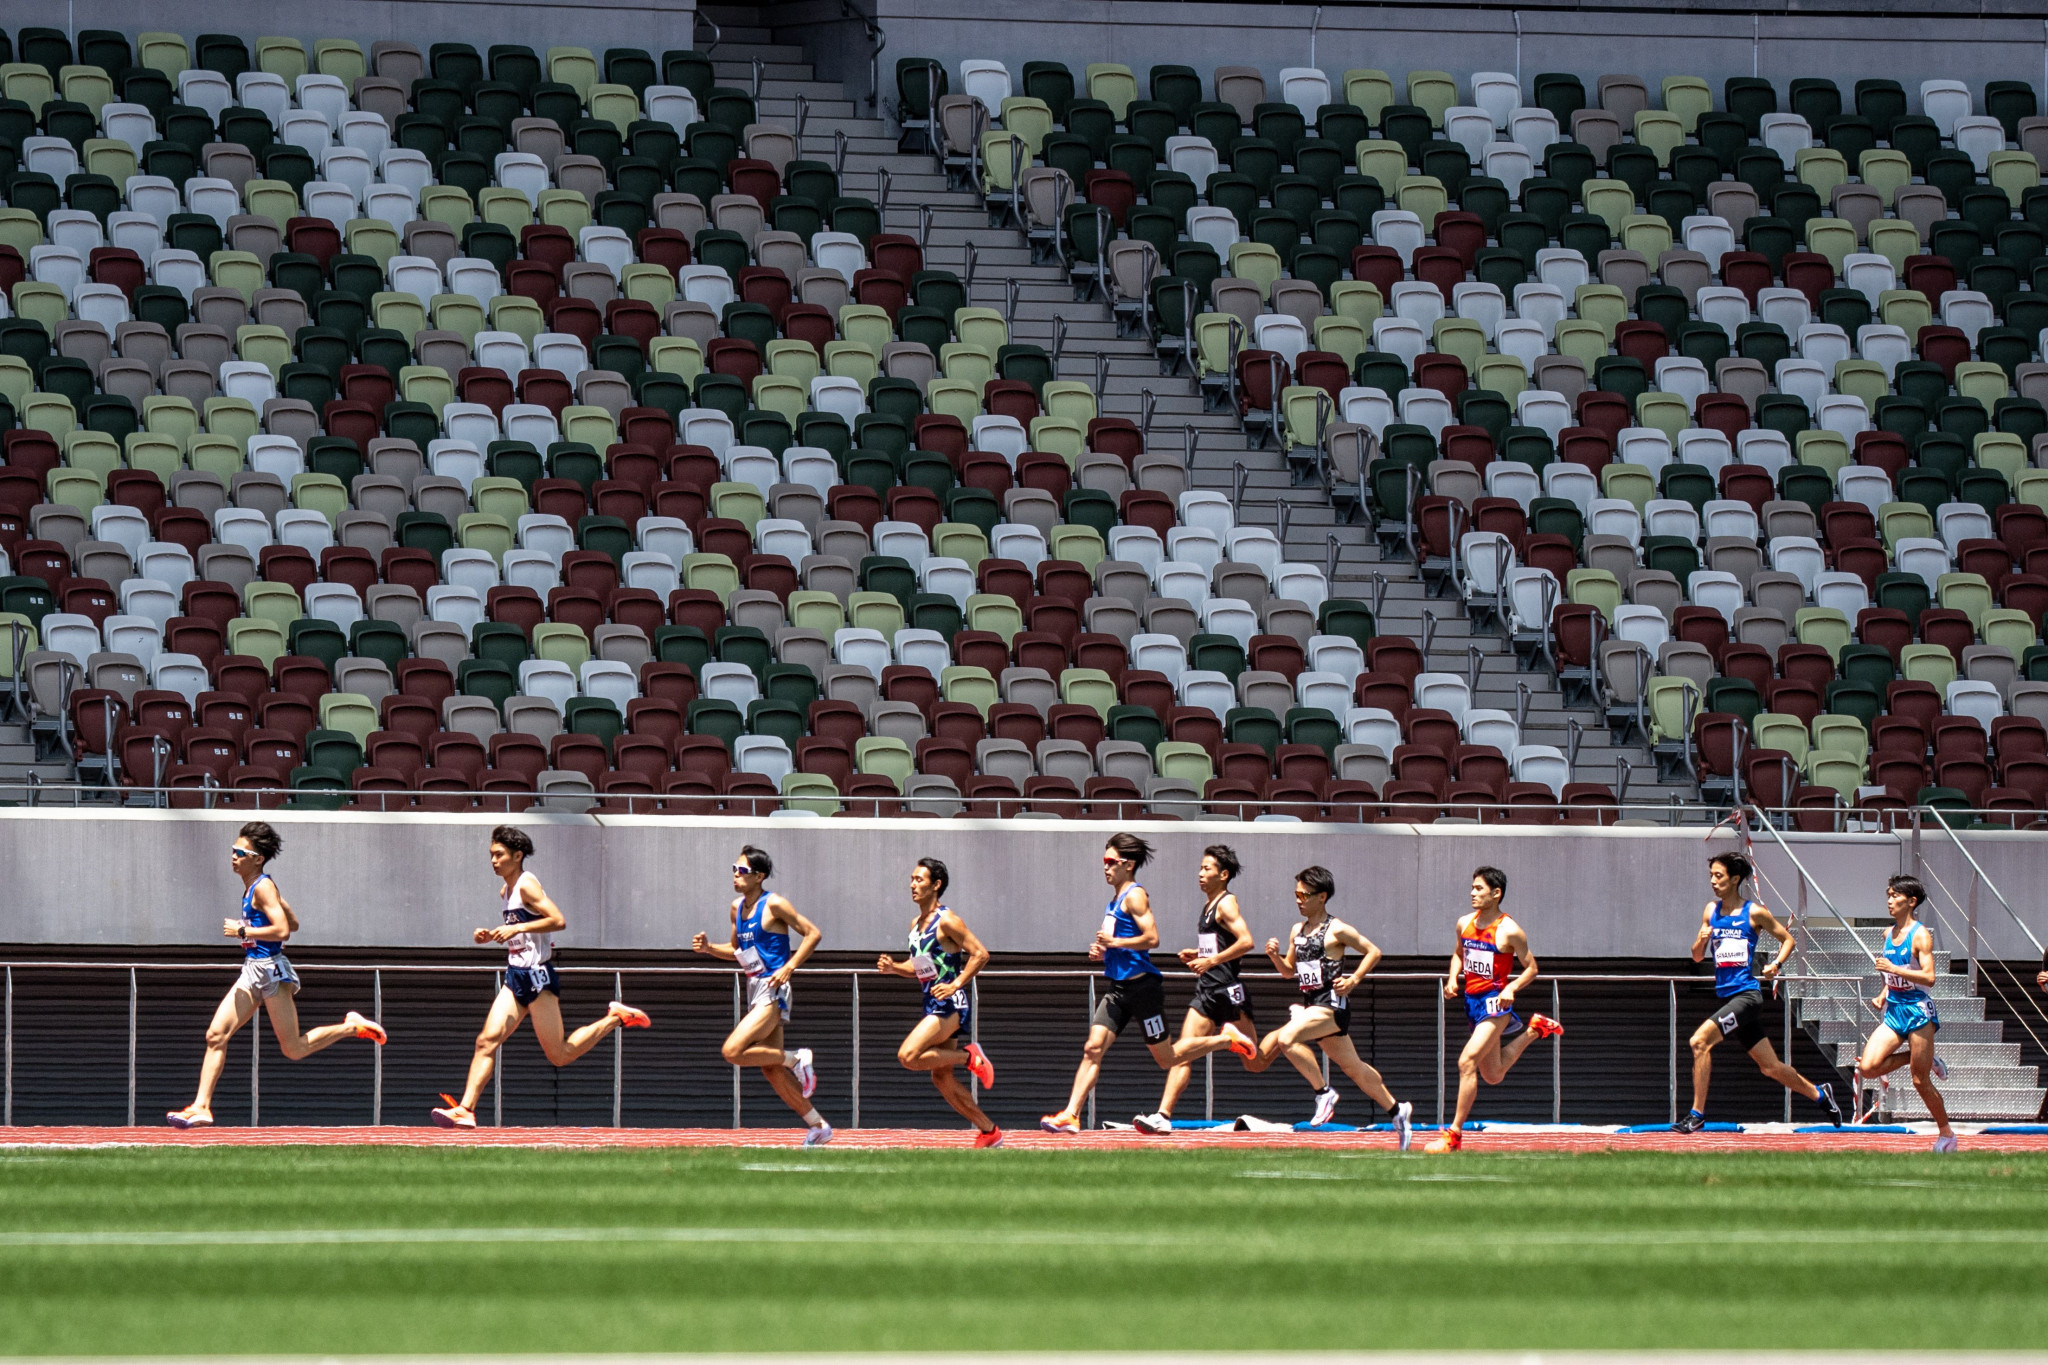 Seats could remain empty at Tokyo 2020 should spectators be prevented from attending the Games ©Getty Images